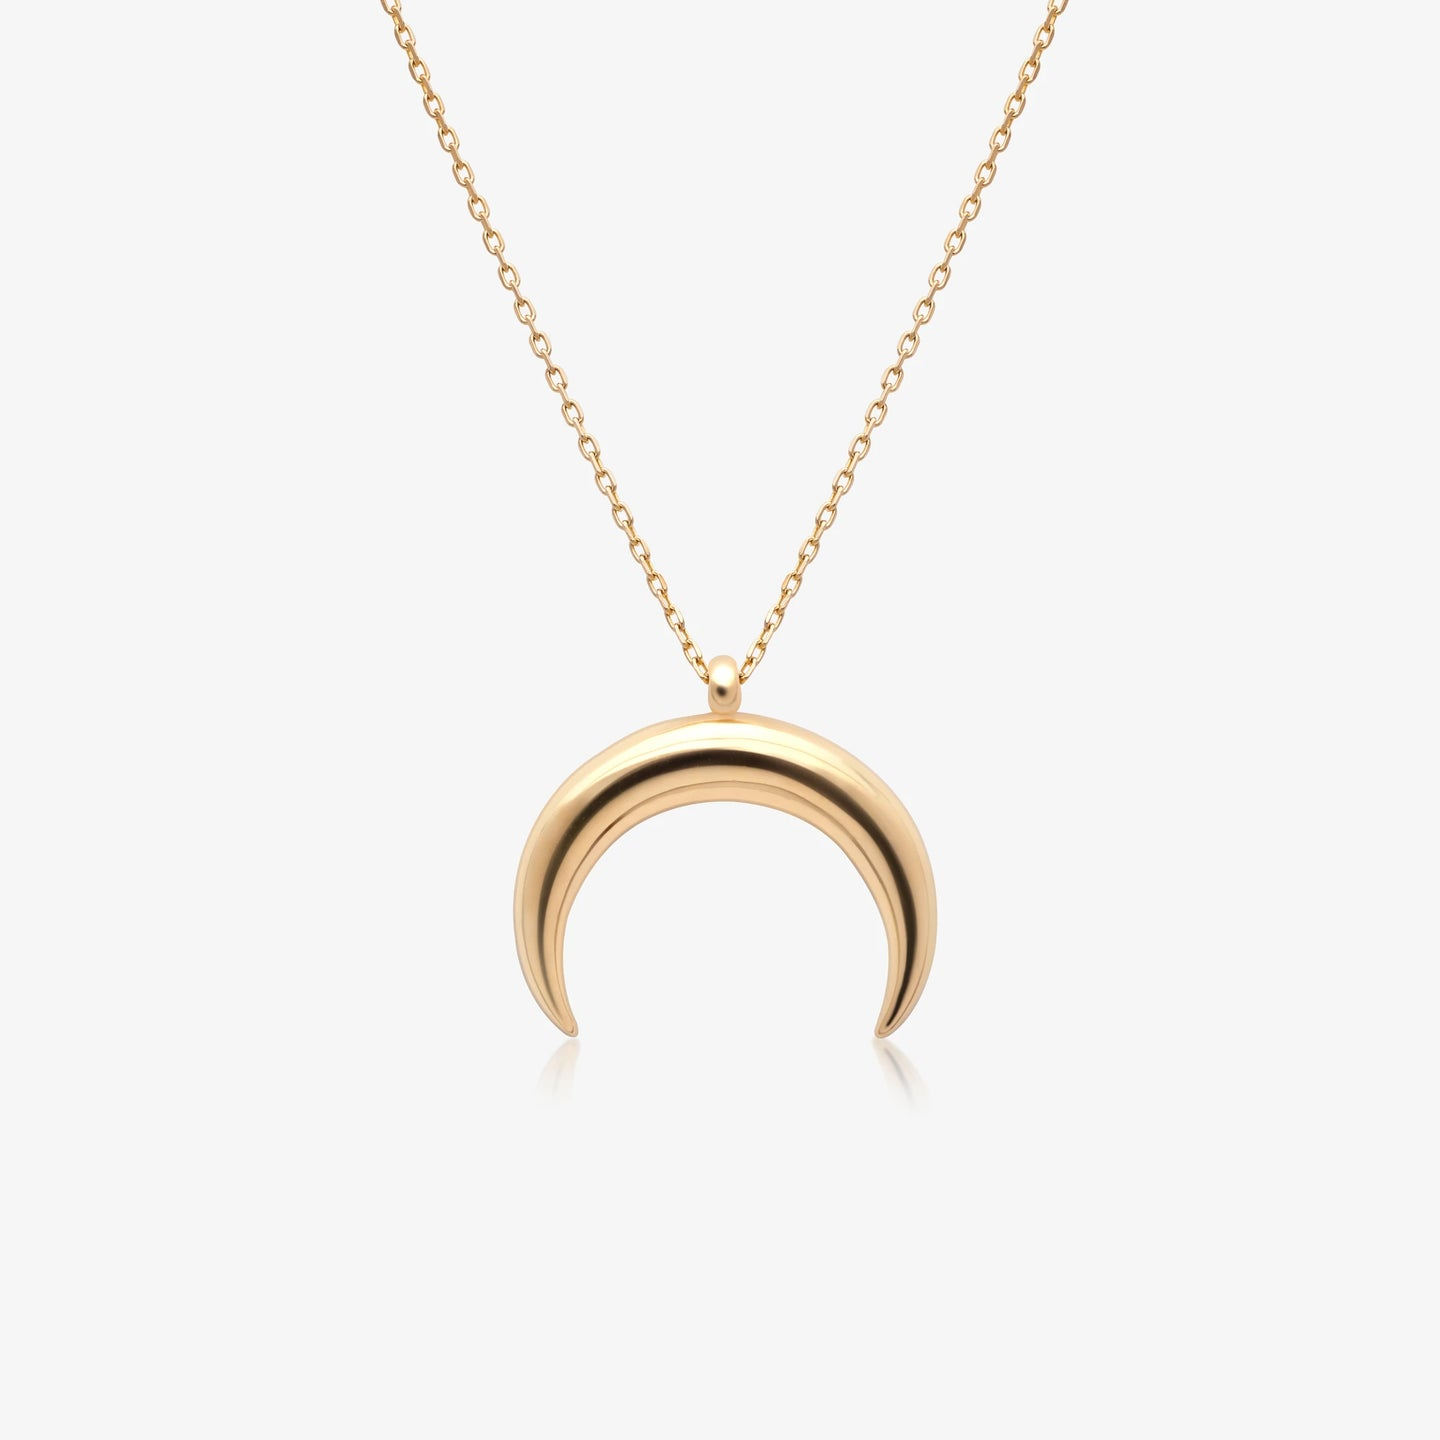 Lara - Gold Crescent Moon Pendant Necklace - estellacollection